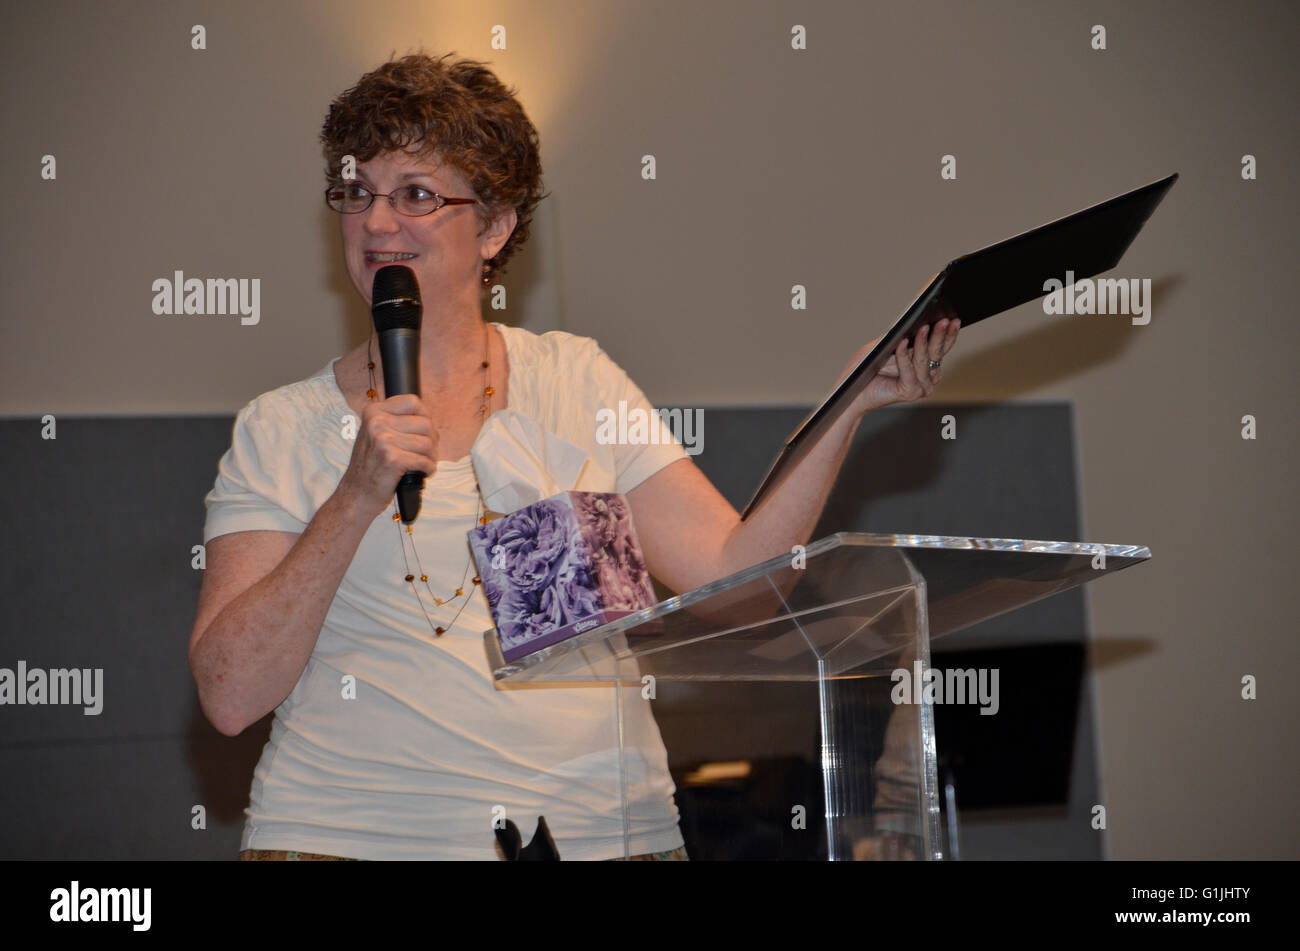 woman speaker holds a folder while speaking - Stock Image